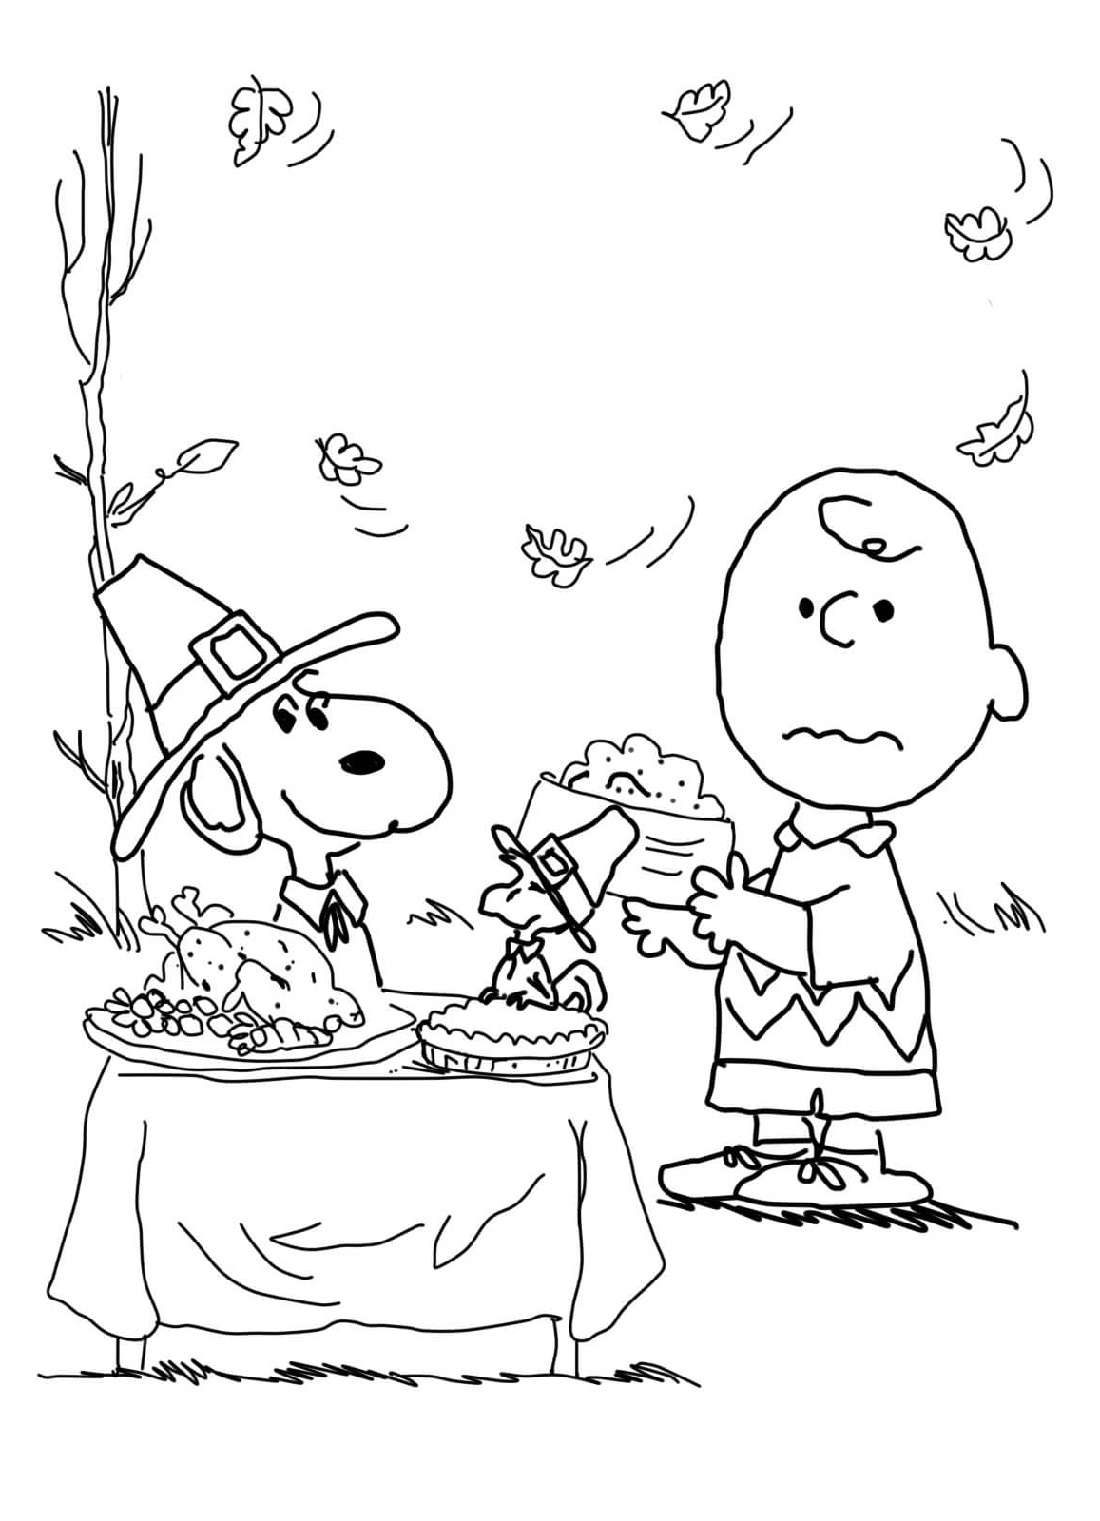 Printable Thanksgiving Coloring Pages Charlie Brown